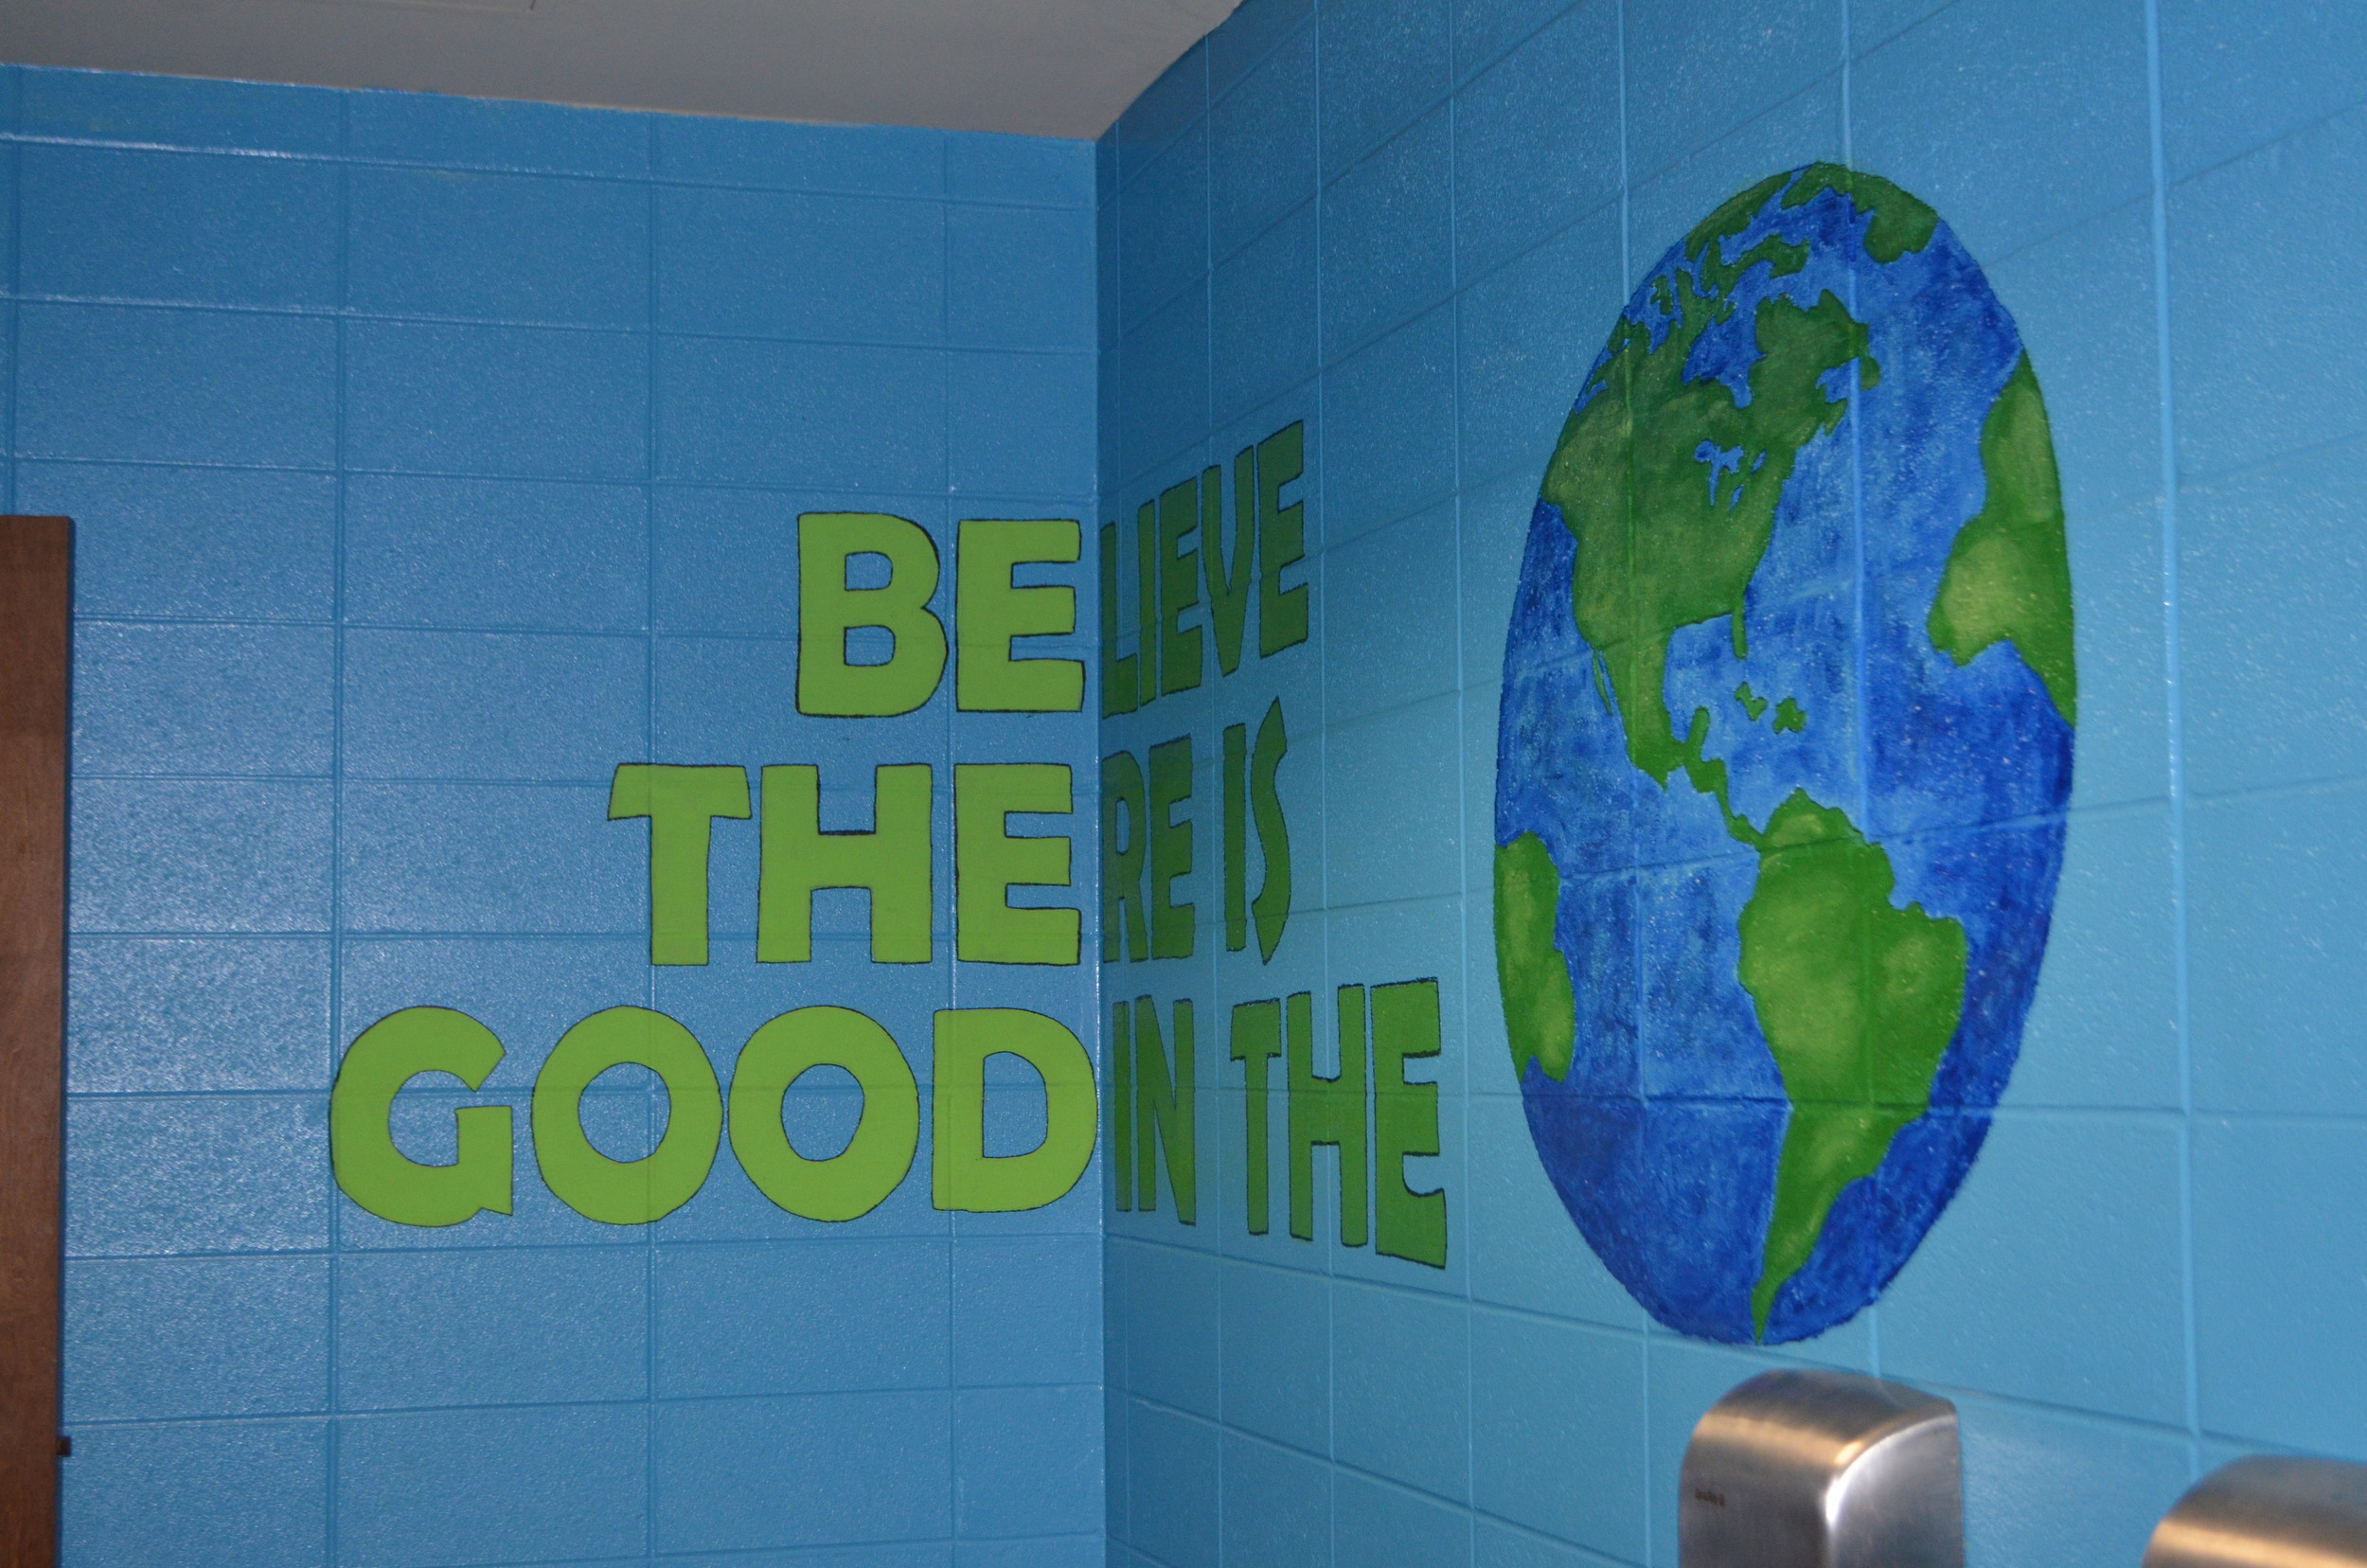 Restrooms at Oakman Middle School were painted over the summer to encourage positivity.